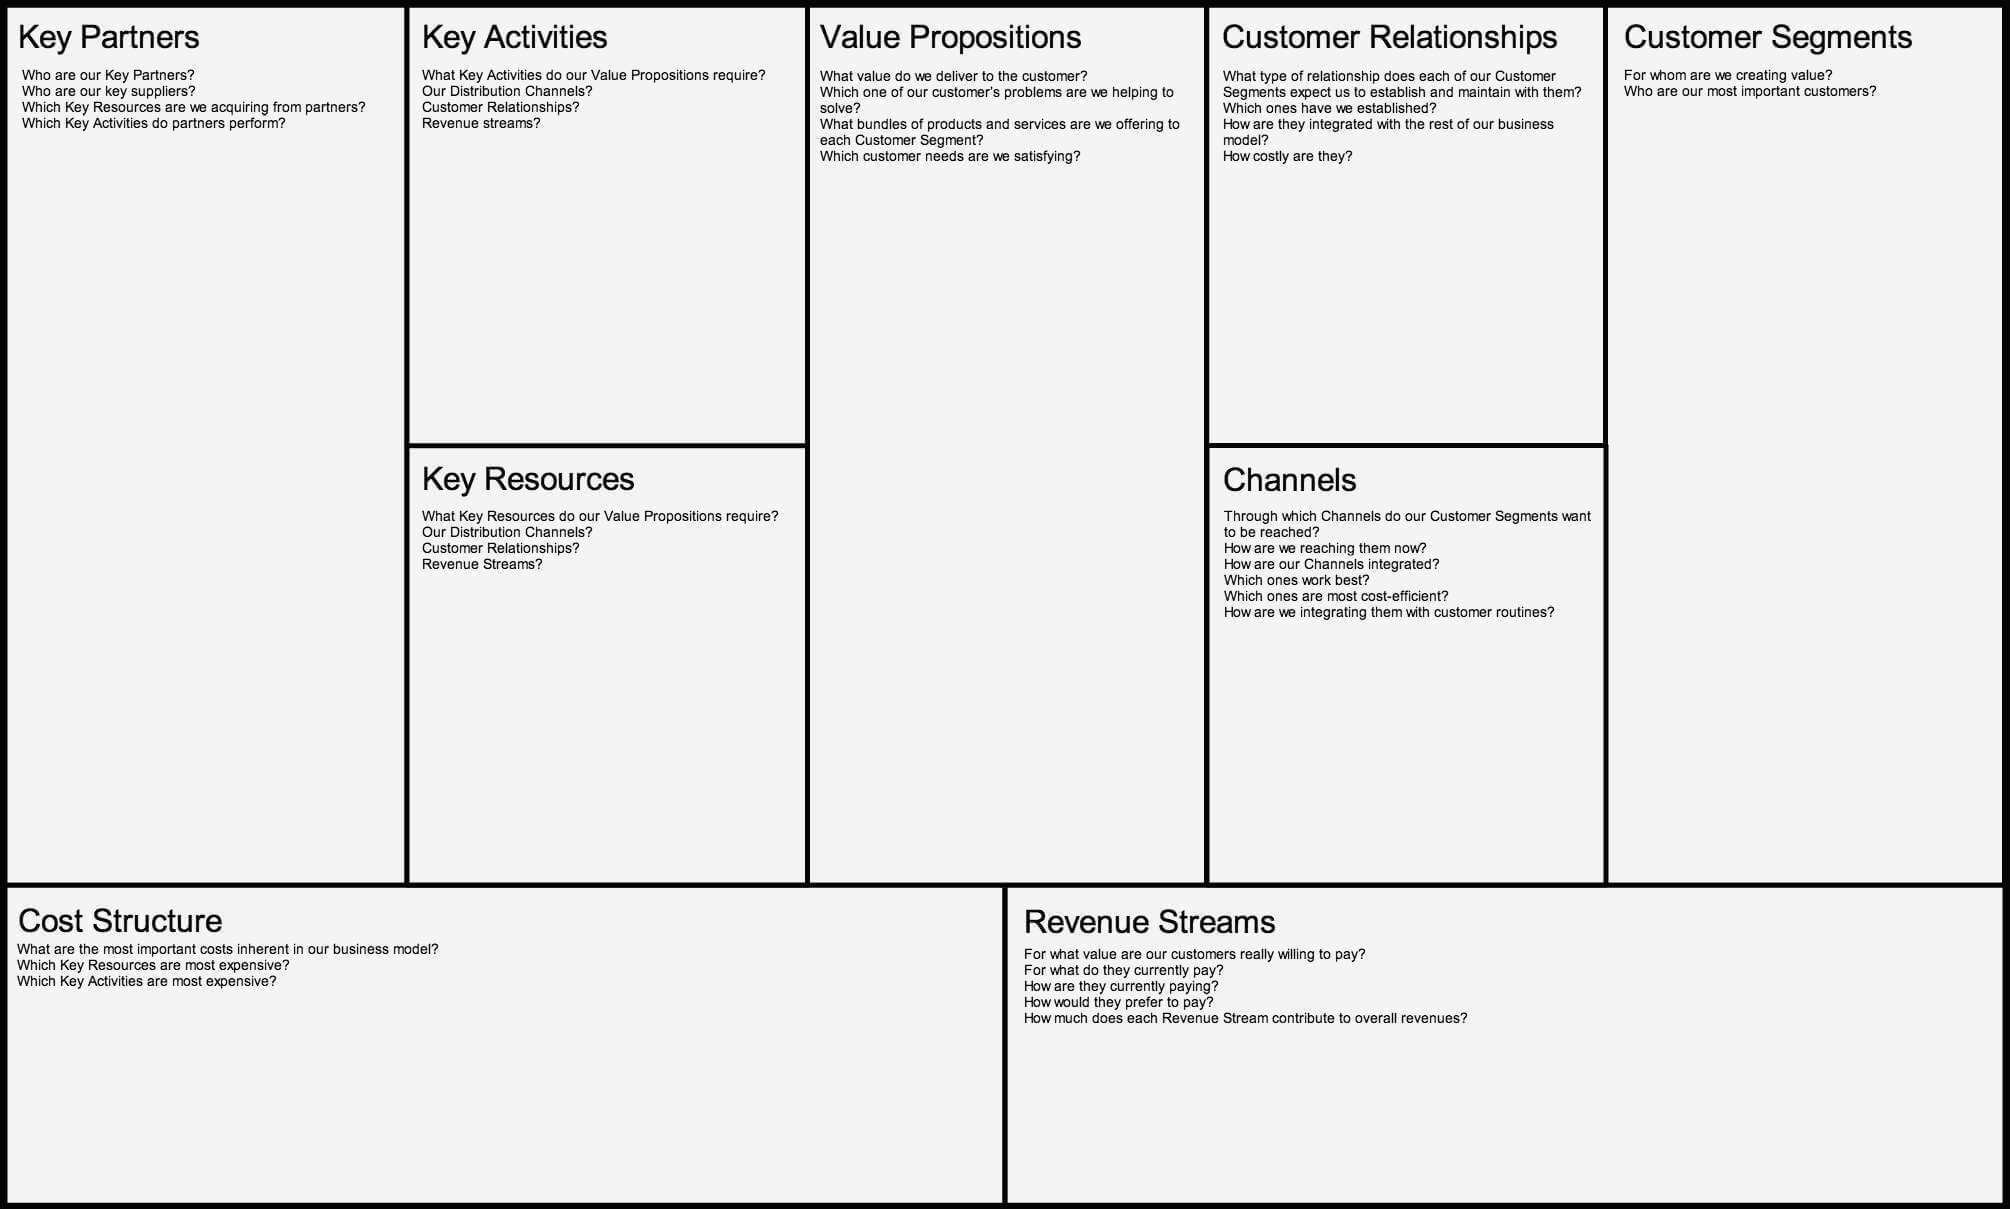 Business Model Canvas Template Word - Caquetapositivo within Business Model Canvas Template Word